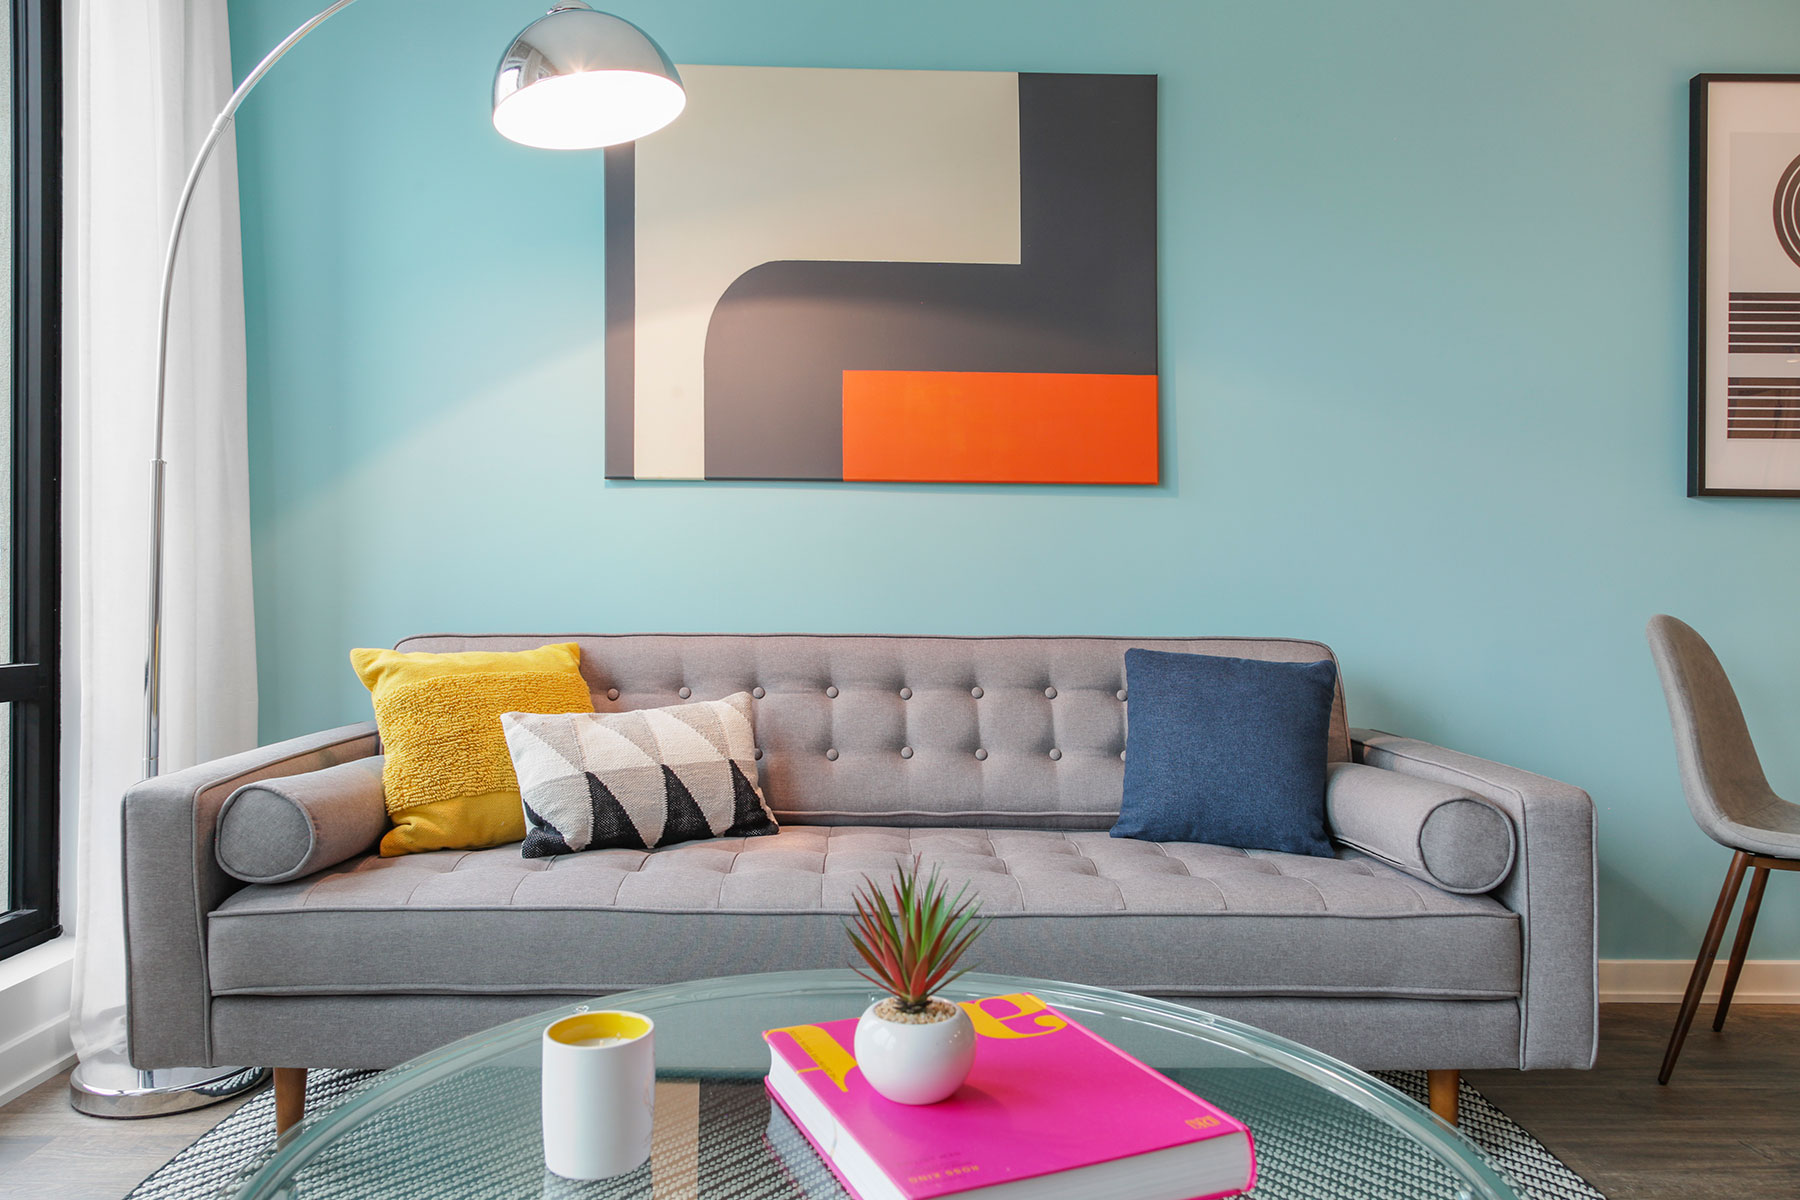 Detail of couch in living room with accent pillow modern art above on light teal accent wall, glass coffee table and lamp in corner